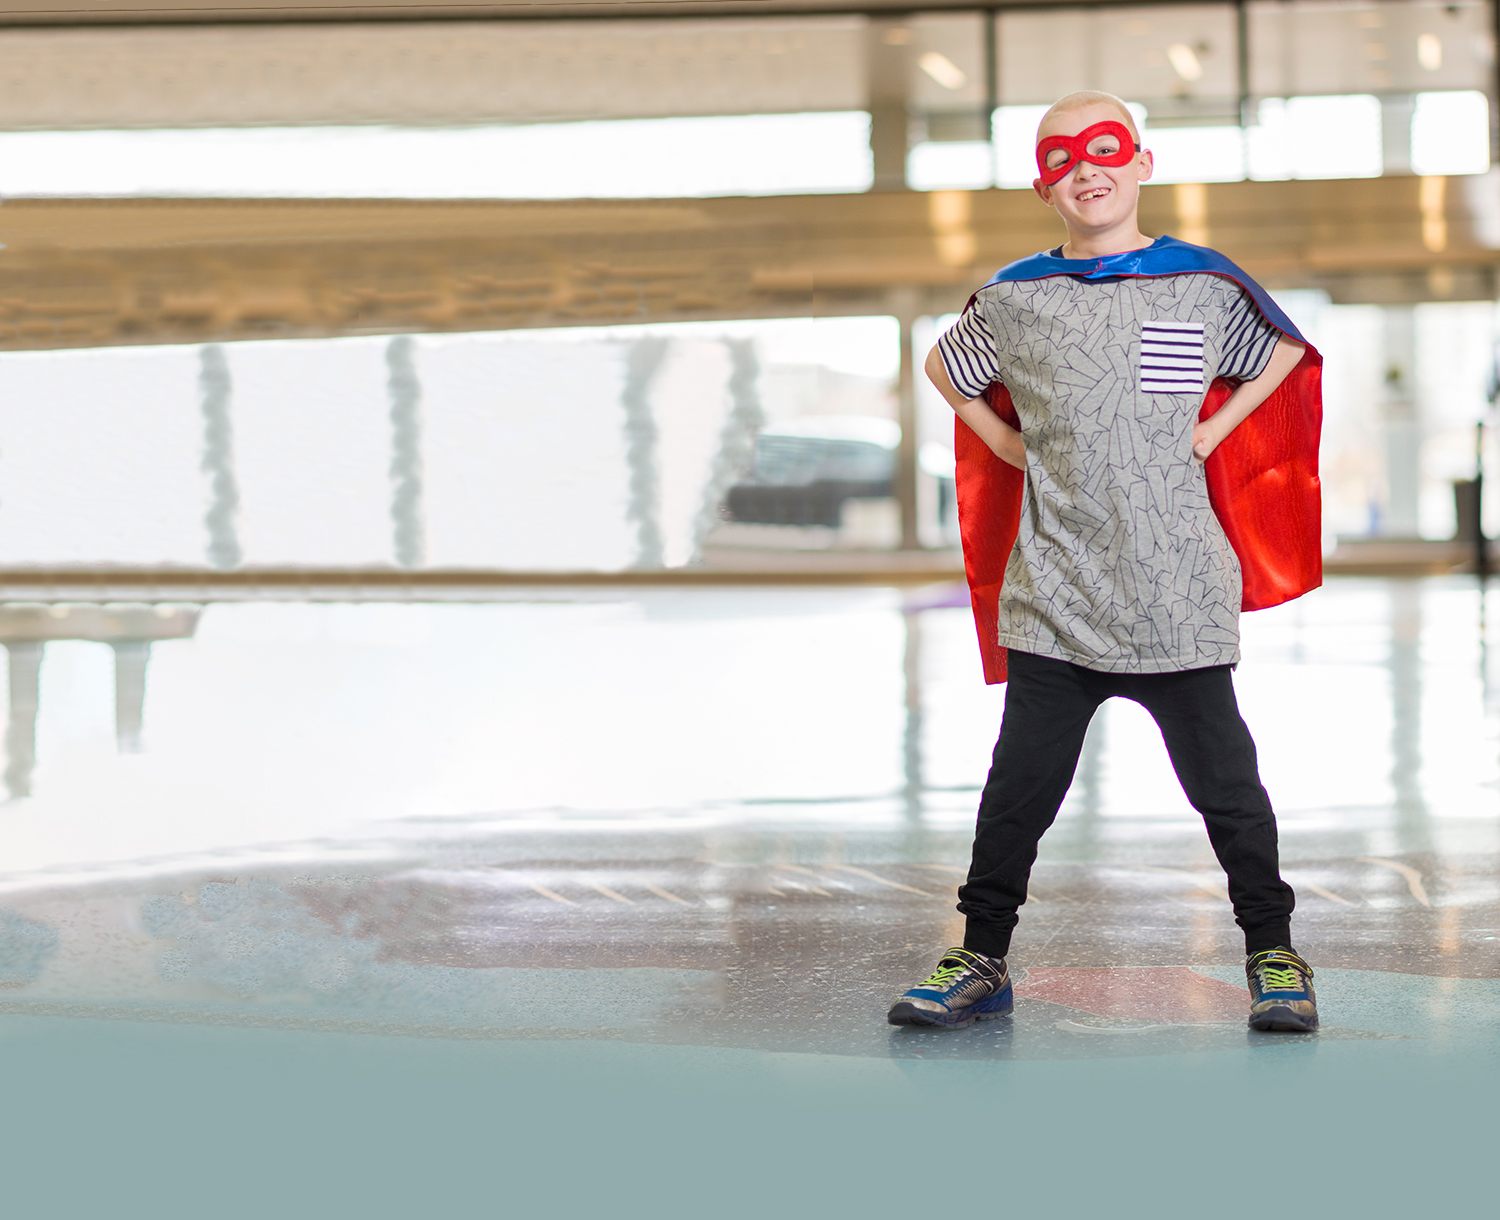 Children's Hospital Colorado Superhero Jalen